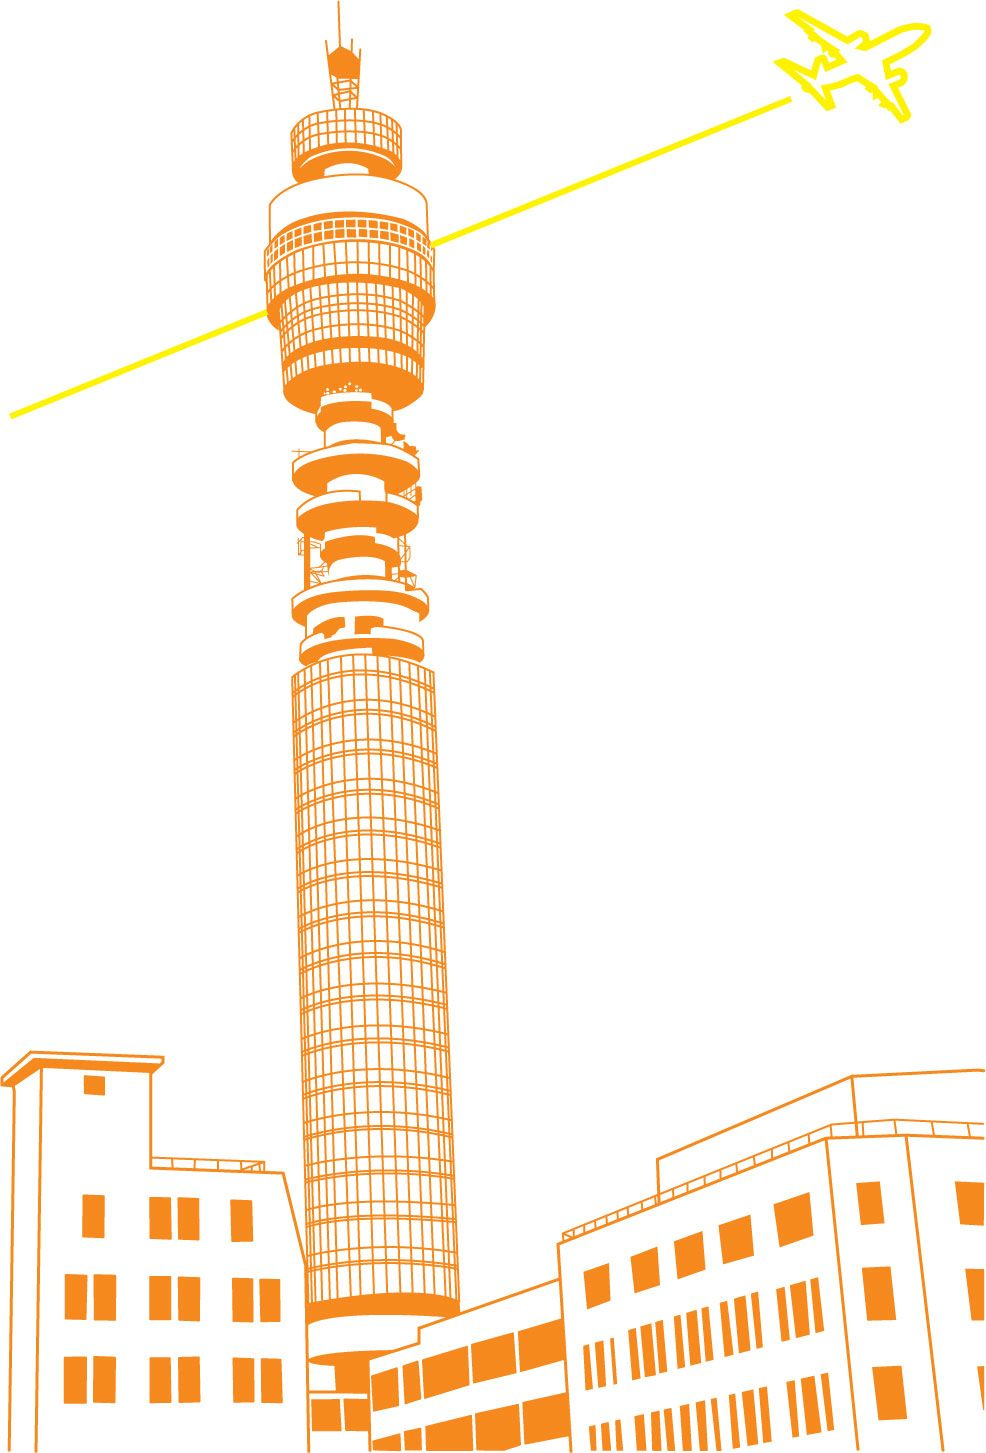 bt tower print, ready for some shade!